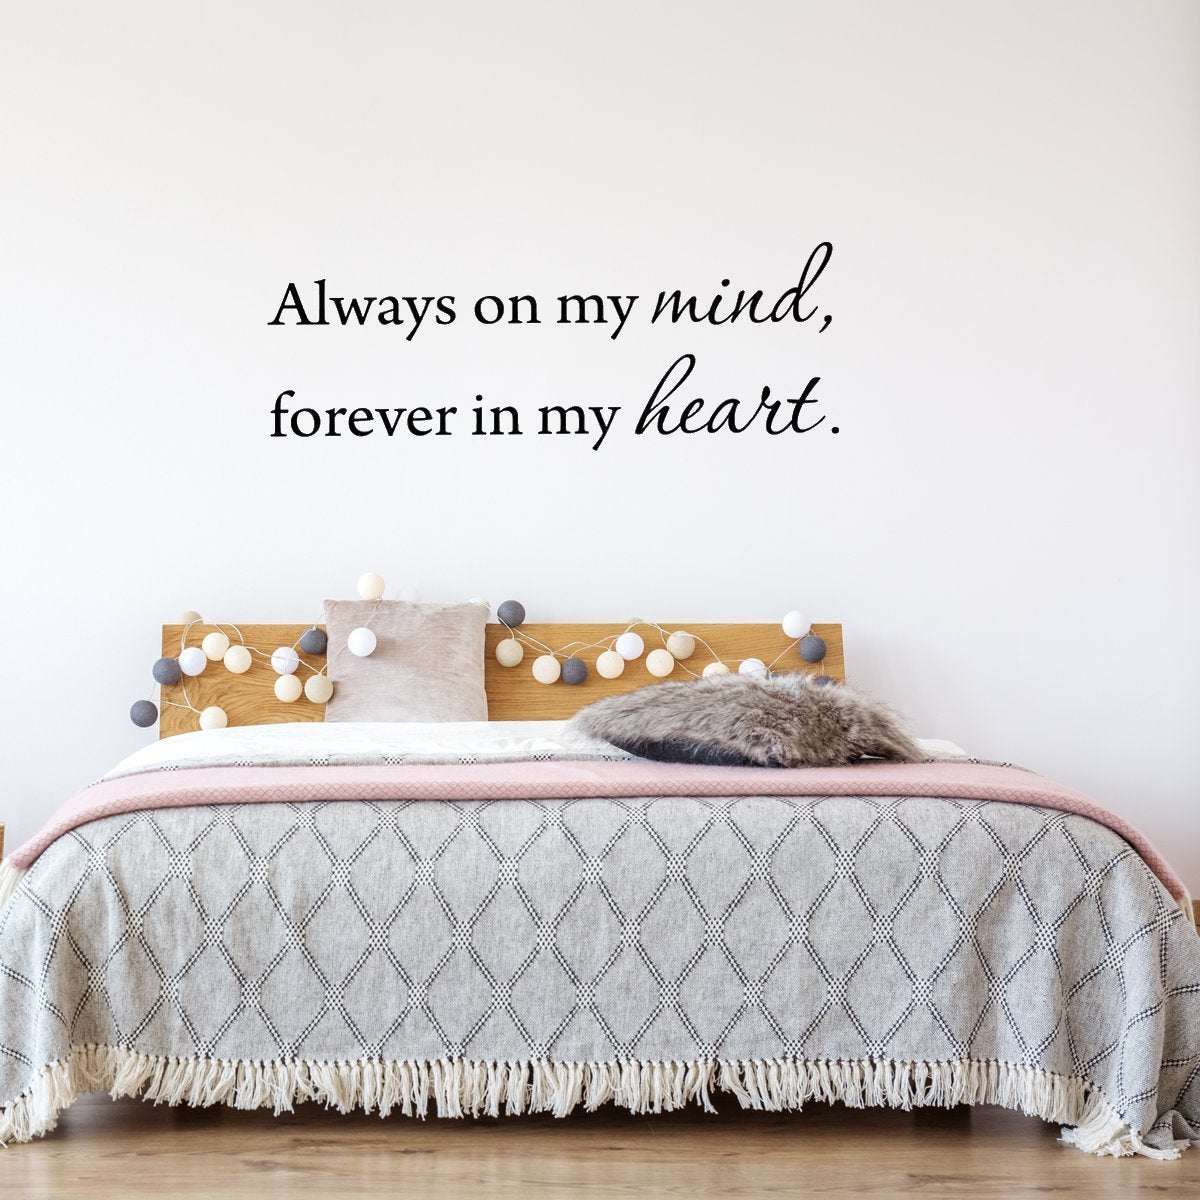 Always On My Mind Forever In My Heart Wall Decal - VWAQ Vinyl Wall Art Quotes and Prints